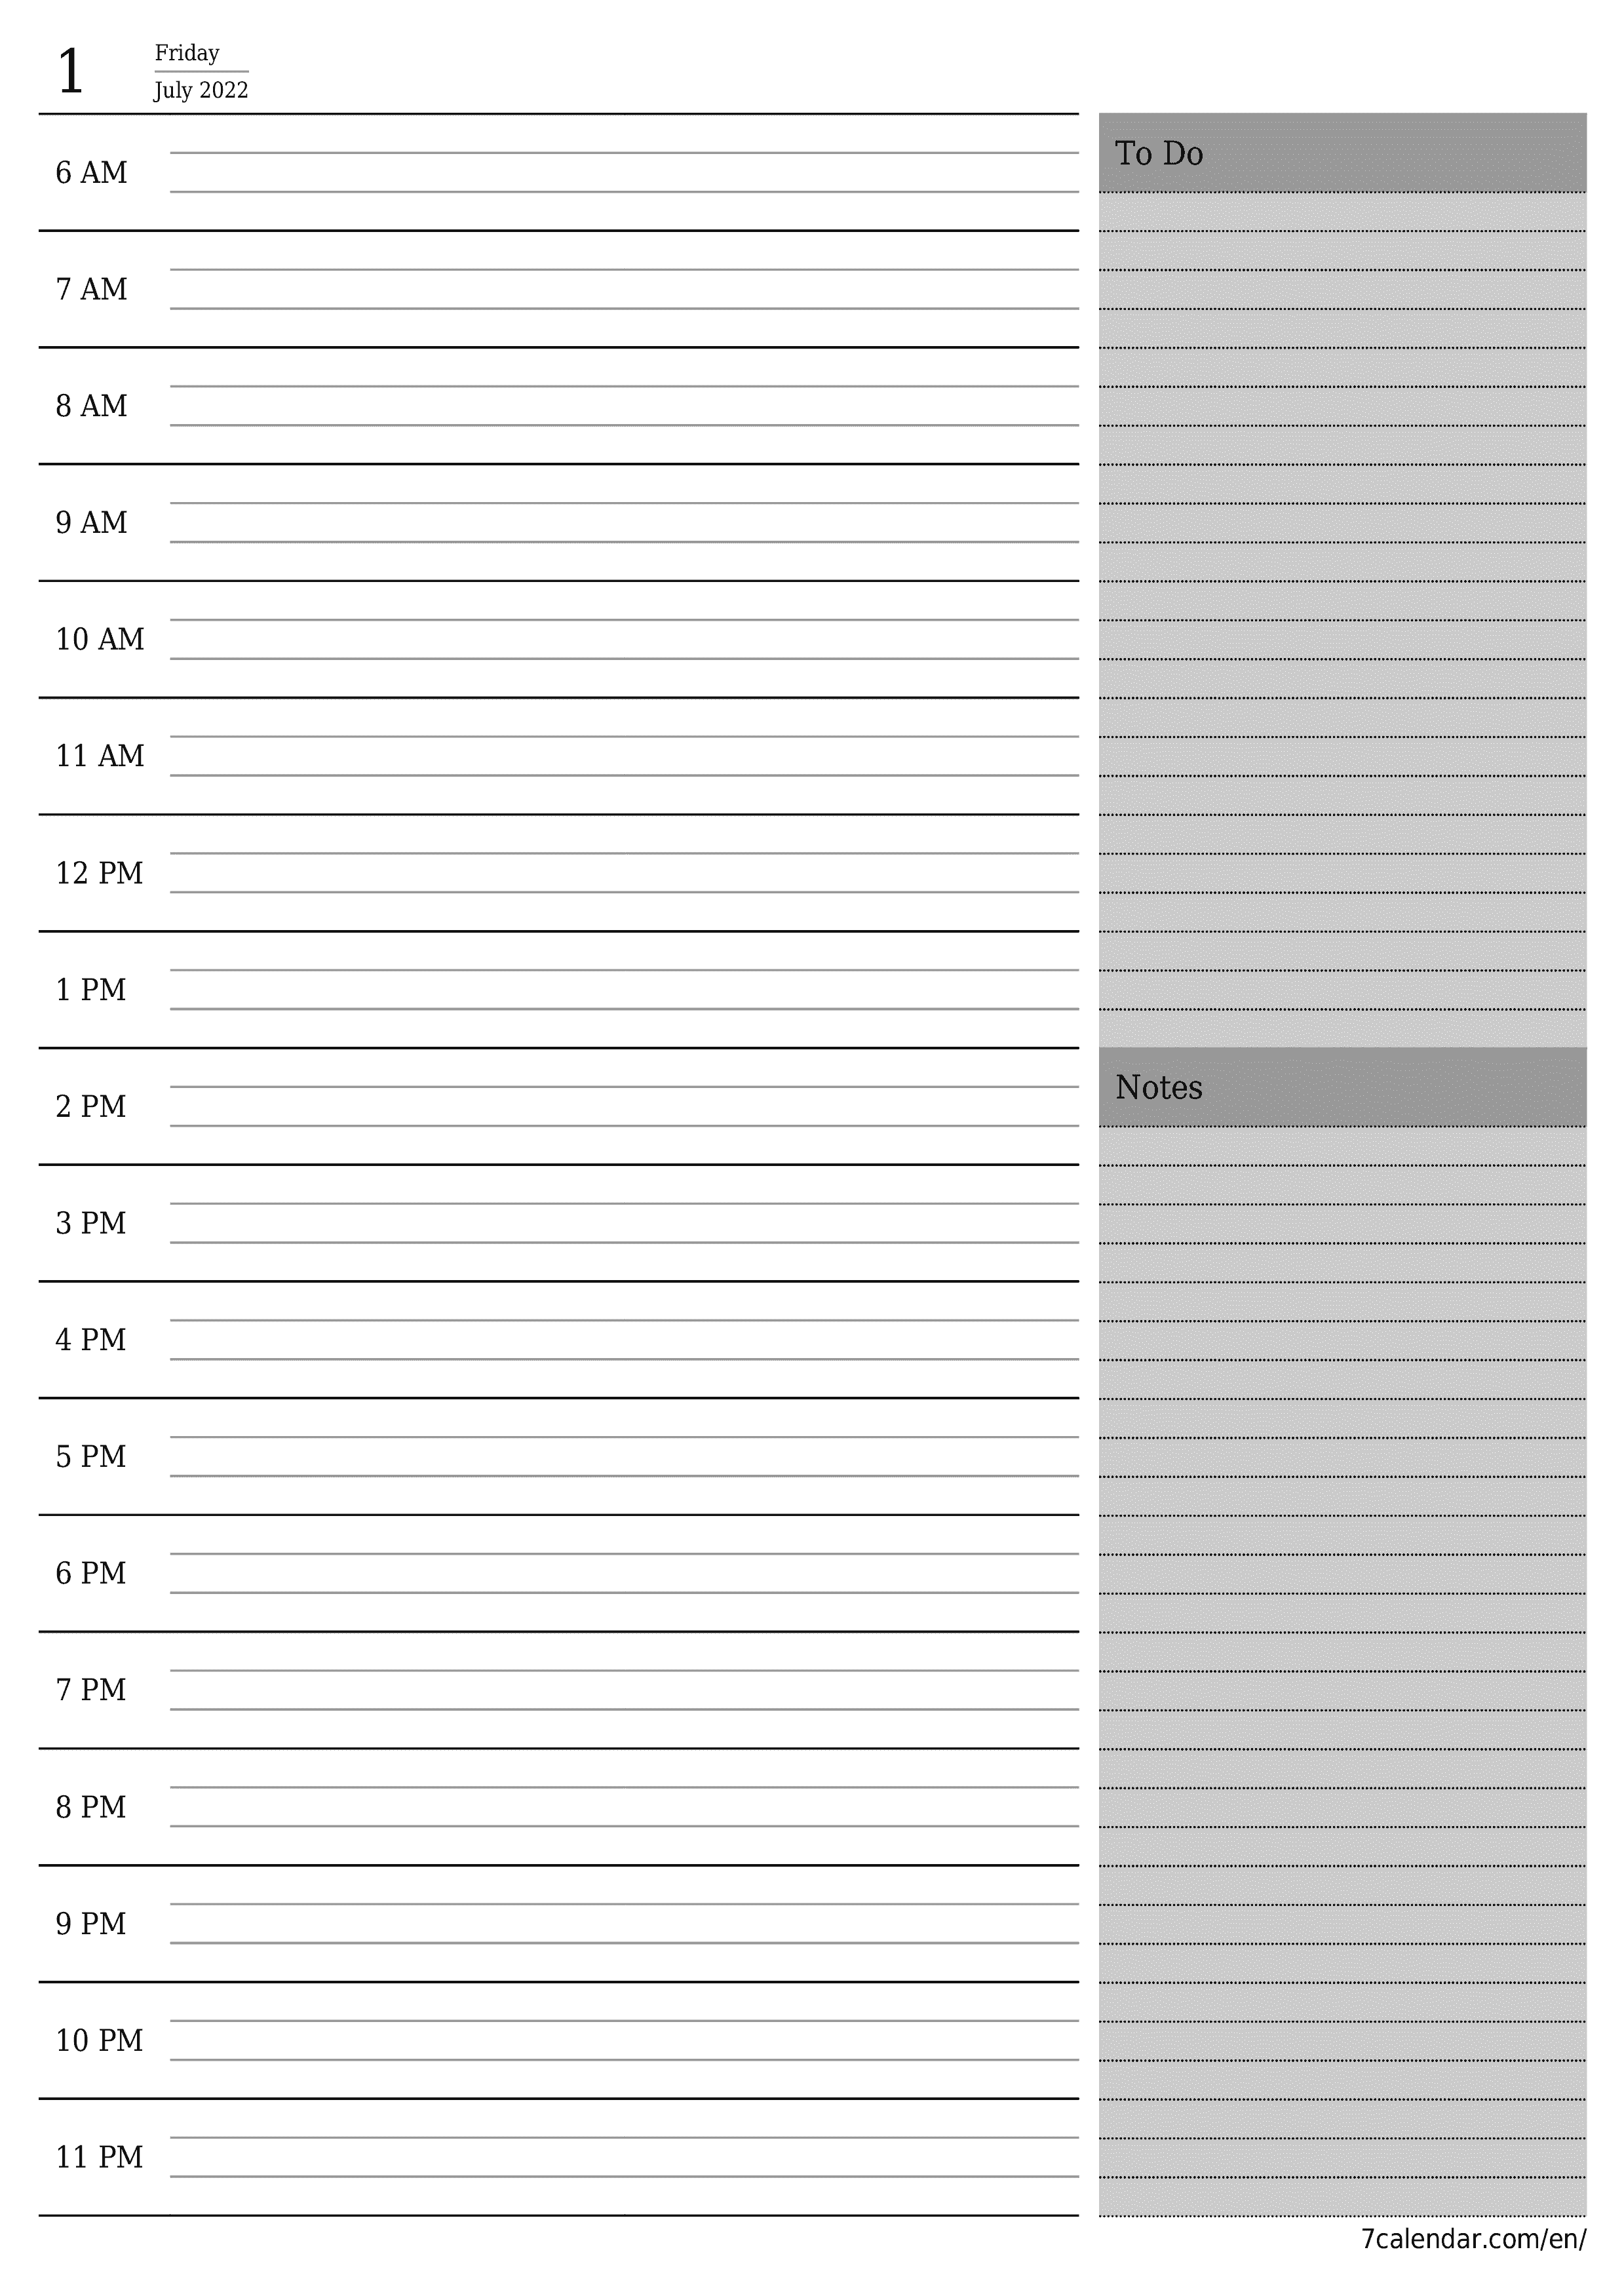 Blank daily calendar planner for day July 2022 with notes, save and print to PDF  - 7calendar.com